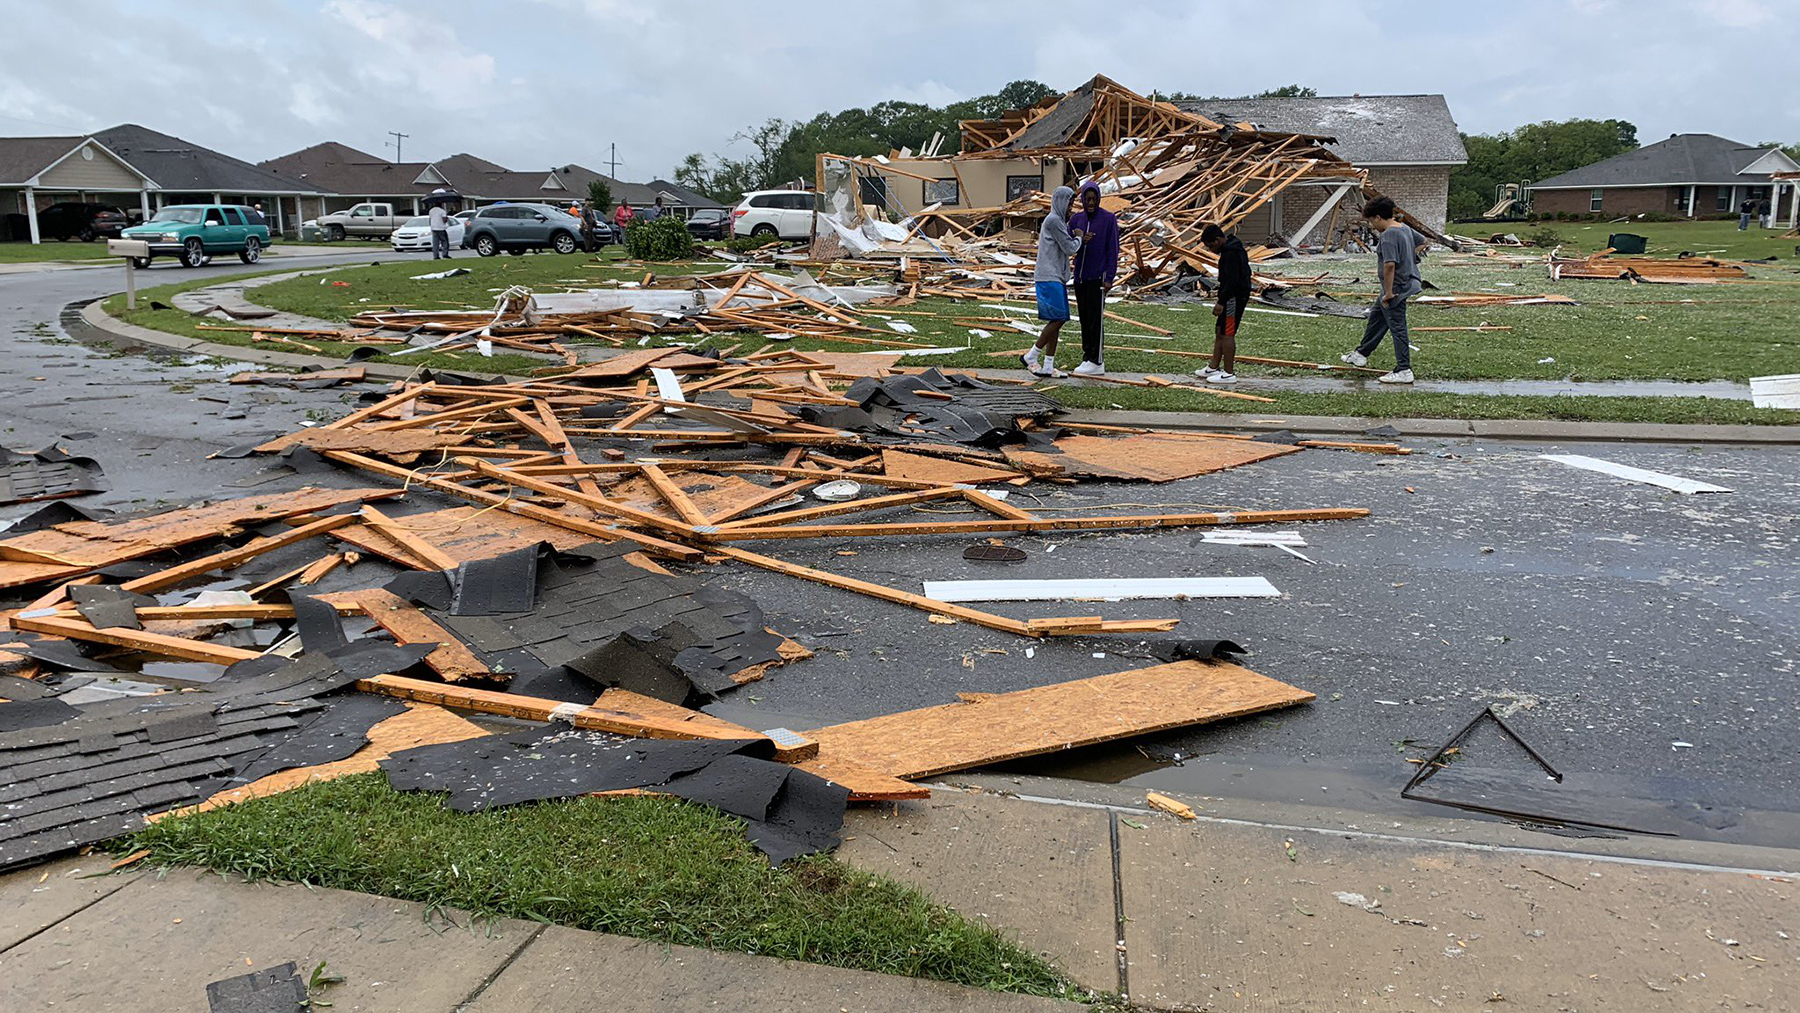 Tornado damage is seen in the city of Monroe, Louisiana, after tornadoes and severe thunderstorms swept through many parts of the U.S. South on Sunday and Monday. The deadly storms add complications for communities already impacted by Covid-19. (Photo courtesy of the City of Monroe)